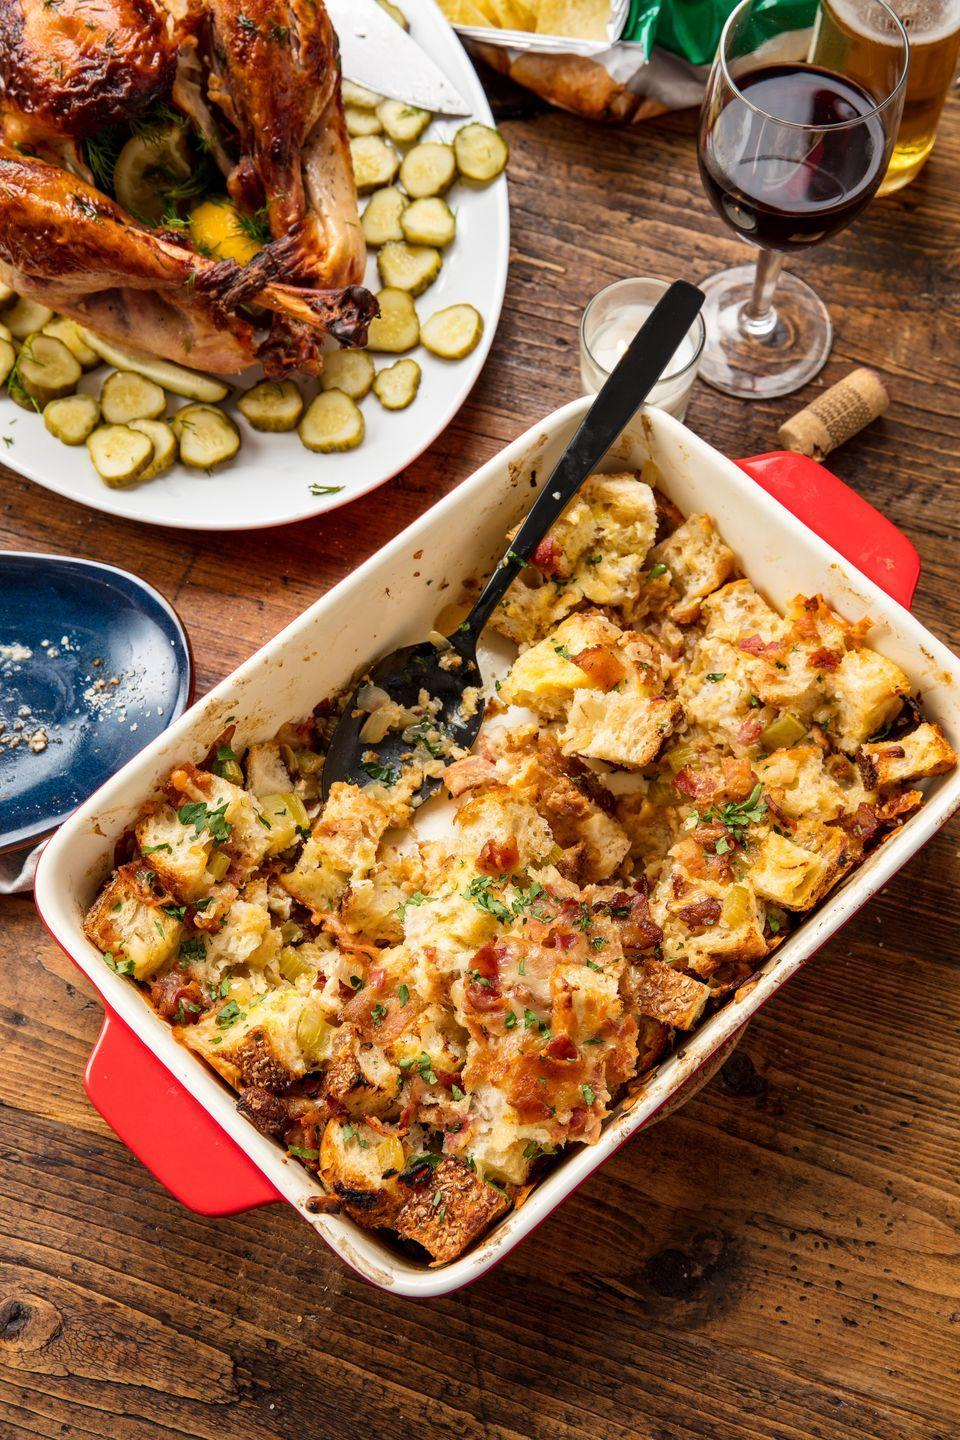 """<p>Beer nicely cuts the richness of the bacon and cheddar in this stuffing recipe.</p><p>Get the recipe from <a href=""""https://www.delish.com/cooking/recipe-ideas/recipes/a44603/cheddar-bacon-beer-stuffing-recipe/"""" rel=""""nofollow noopener"""" target=""""_blank"""" data-ylk=""""slk:Delish"""" class=""""link rapid-noclick-resp"""">Delish</a>.</p>"""